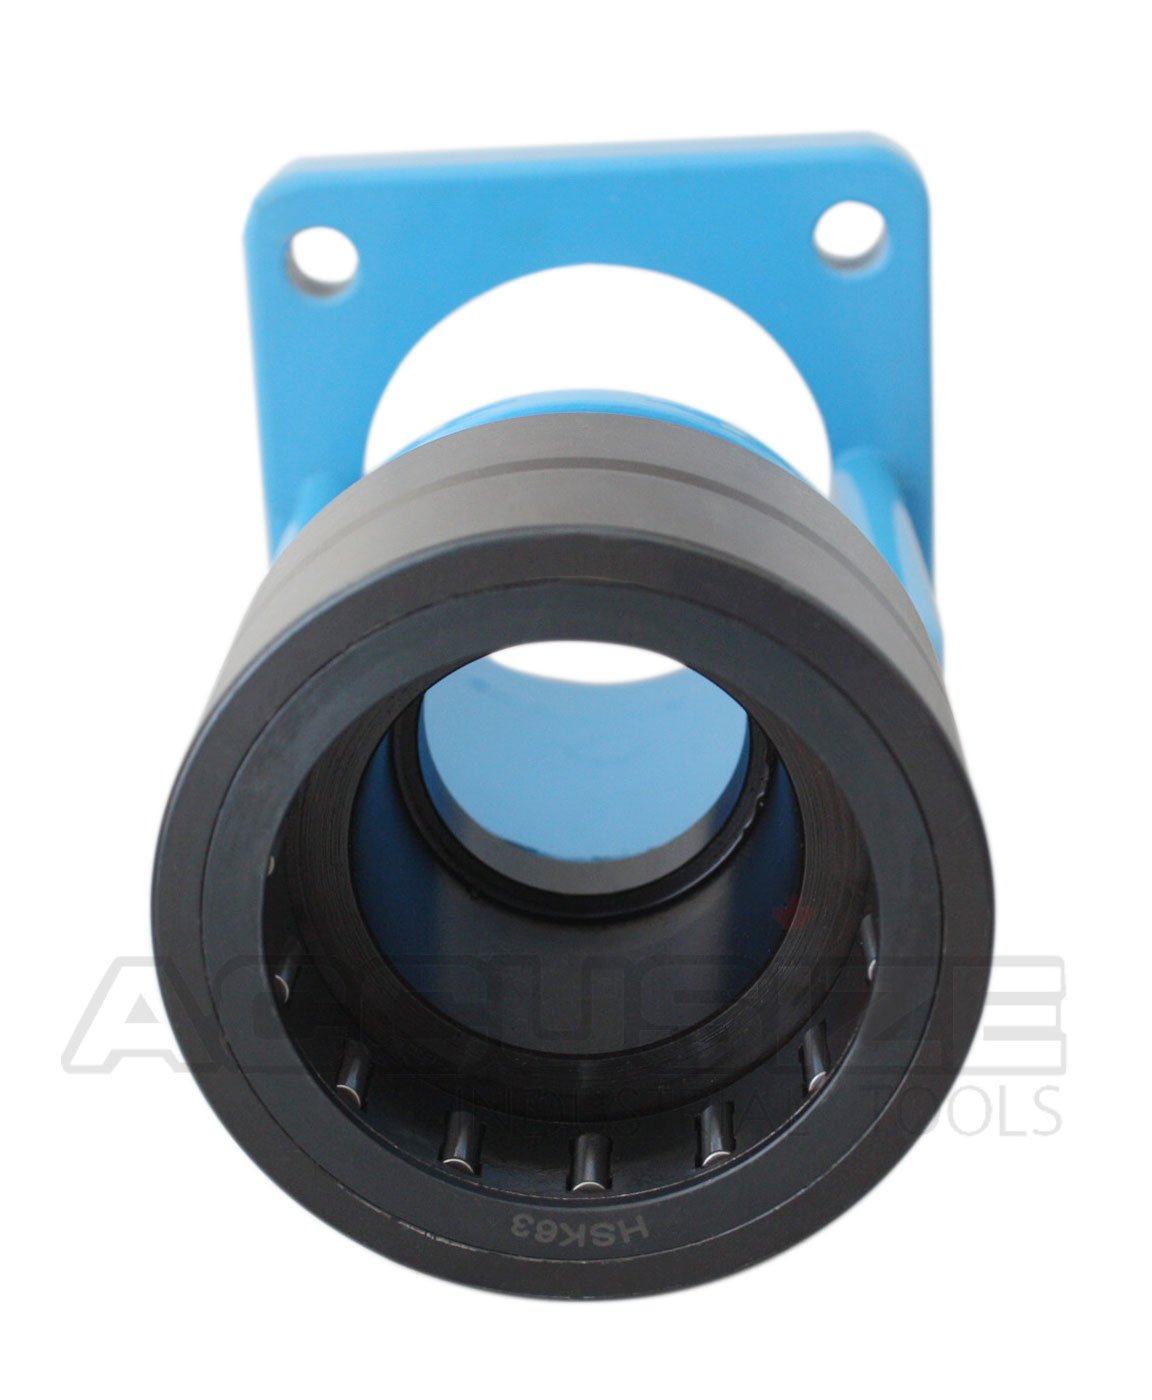 Accusize Tools - HSK Tooling Tightening Fixture for HSK63 A/E, NBT40/BT40, HSK0-0063 by Accusize Industrial Tools (Image #1)